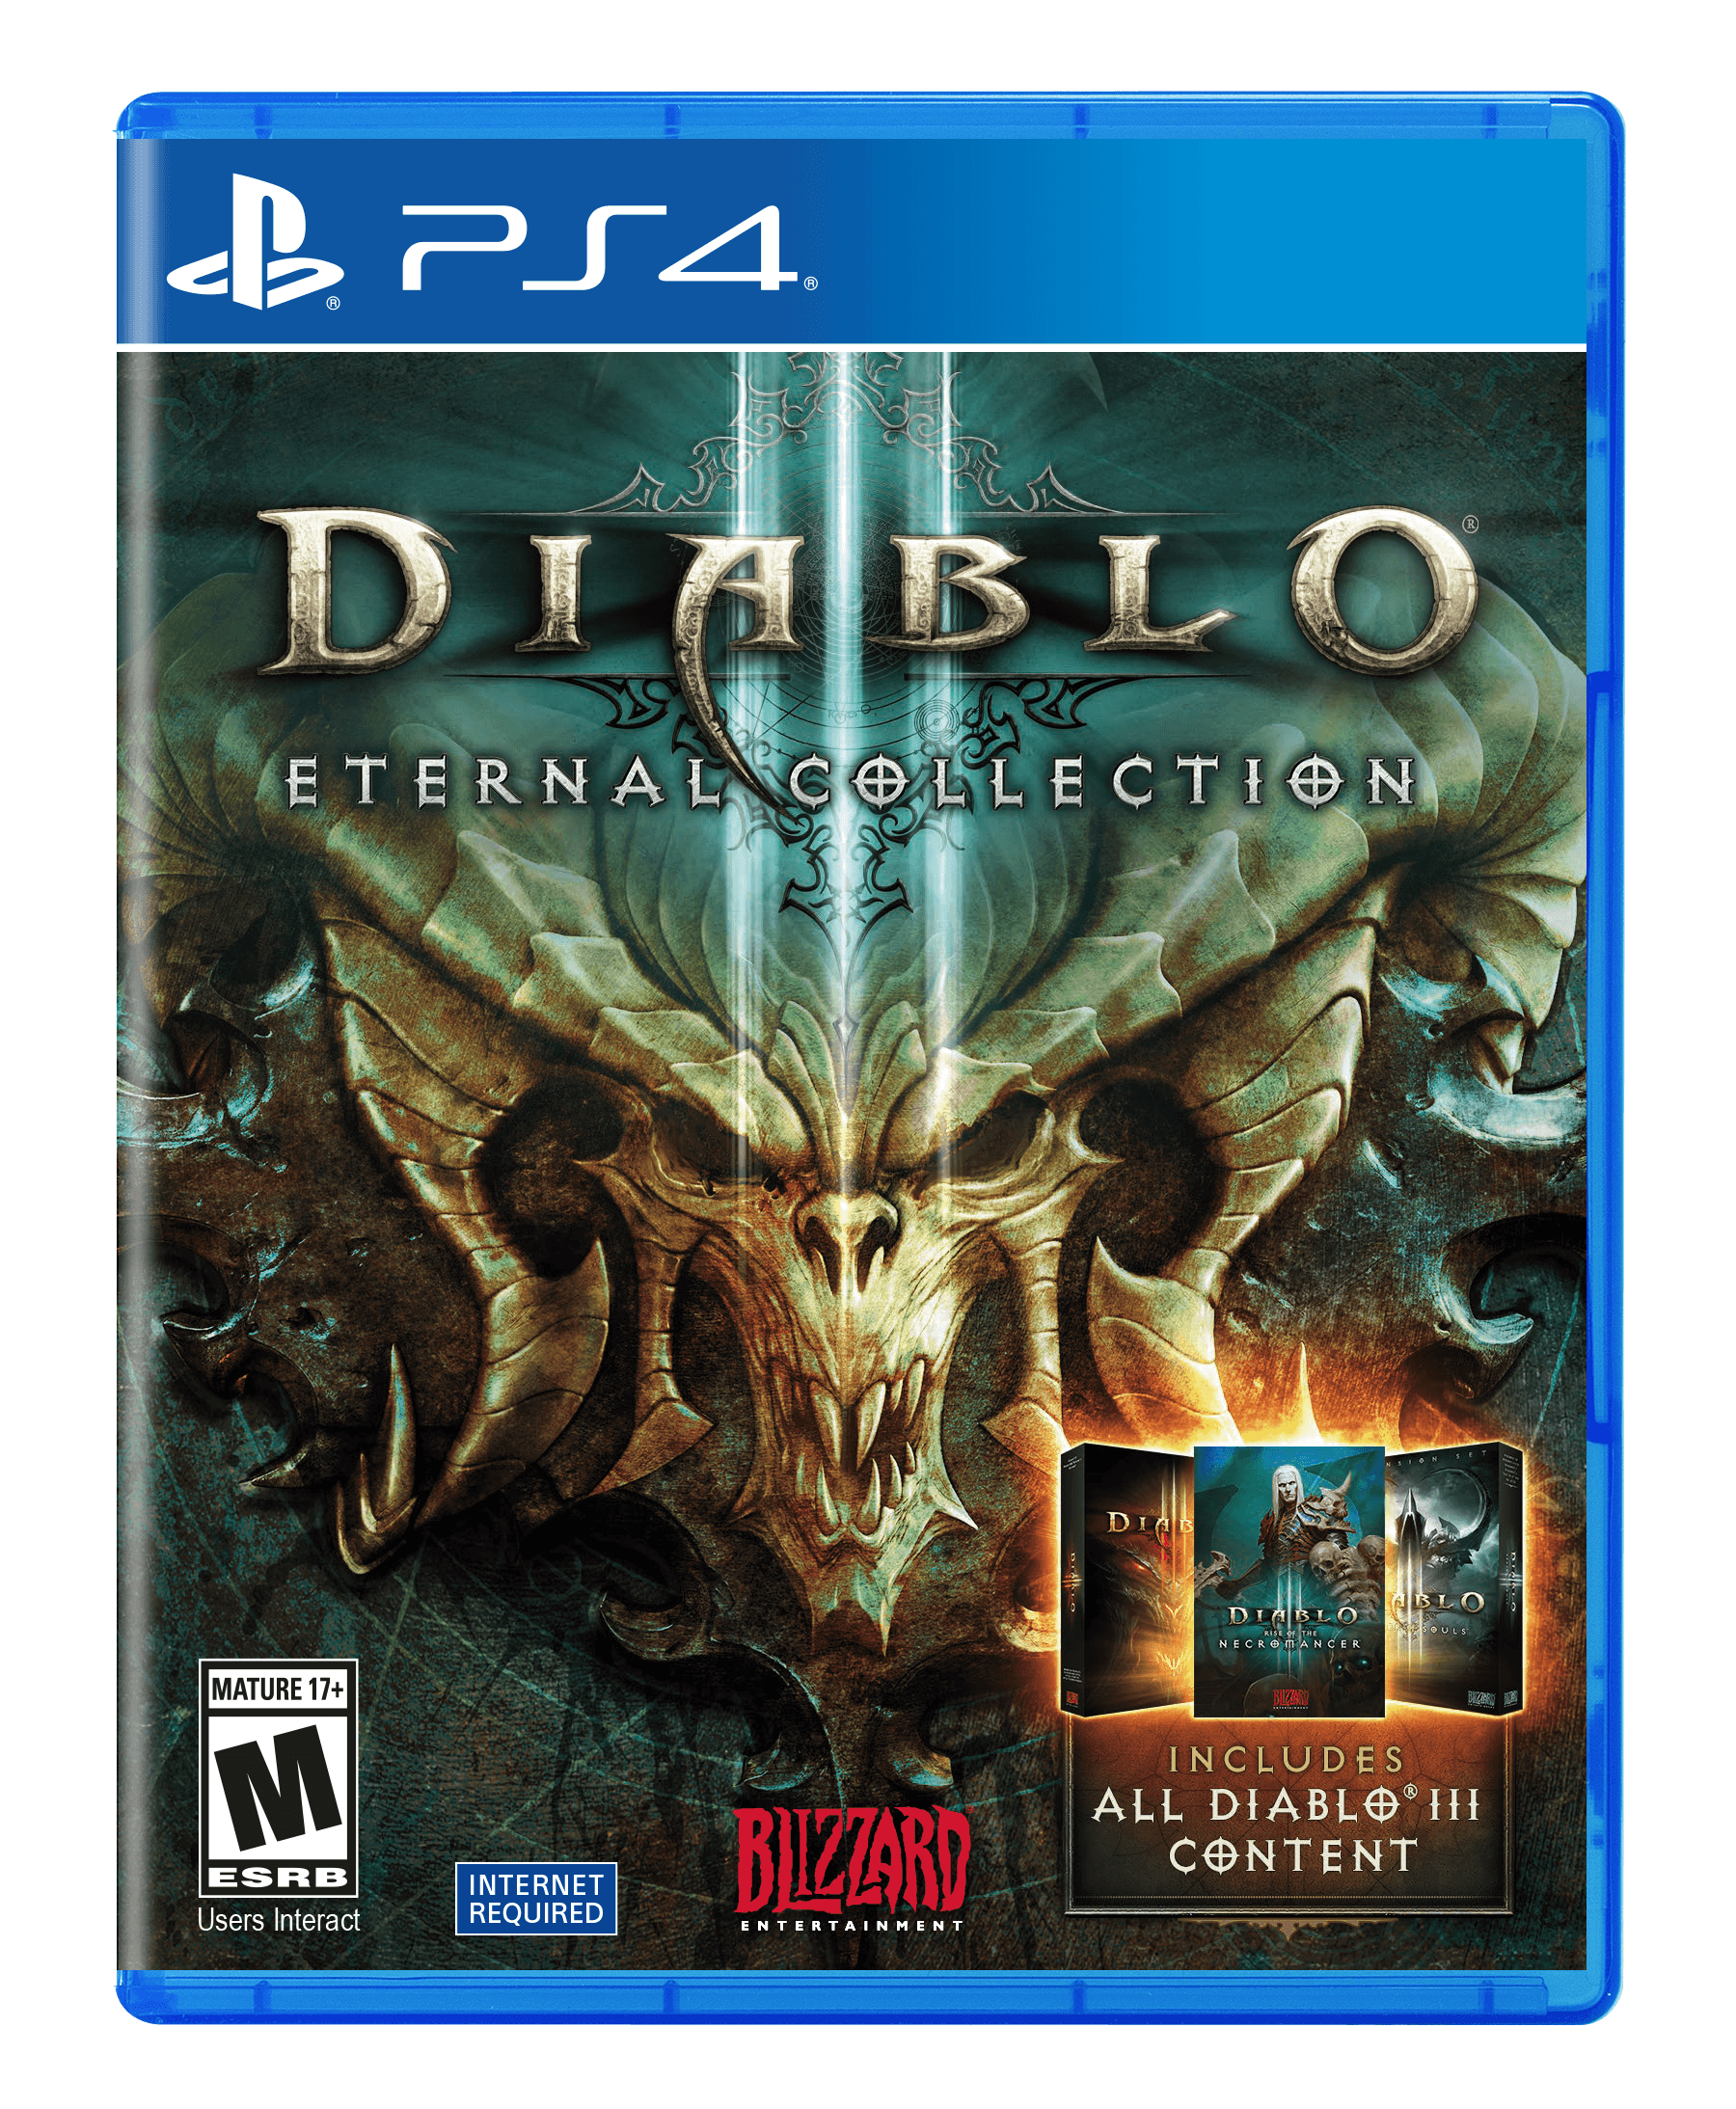 Diablo III Eternal Collection, Activision, PlayStation 4, 047875882140